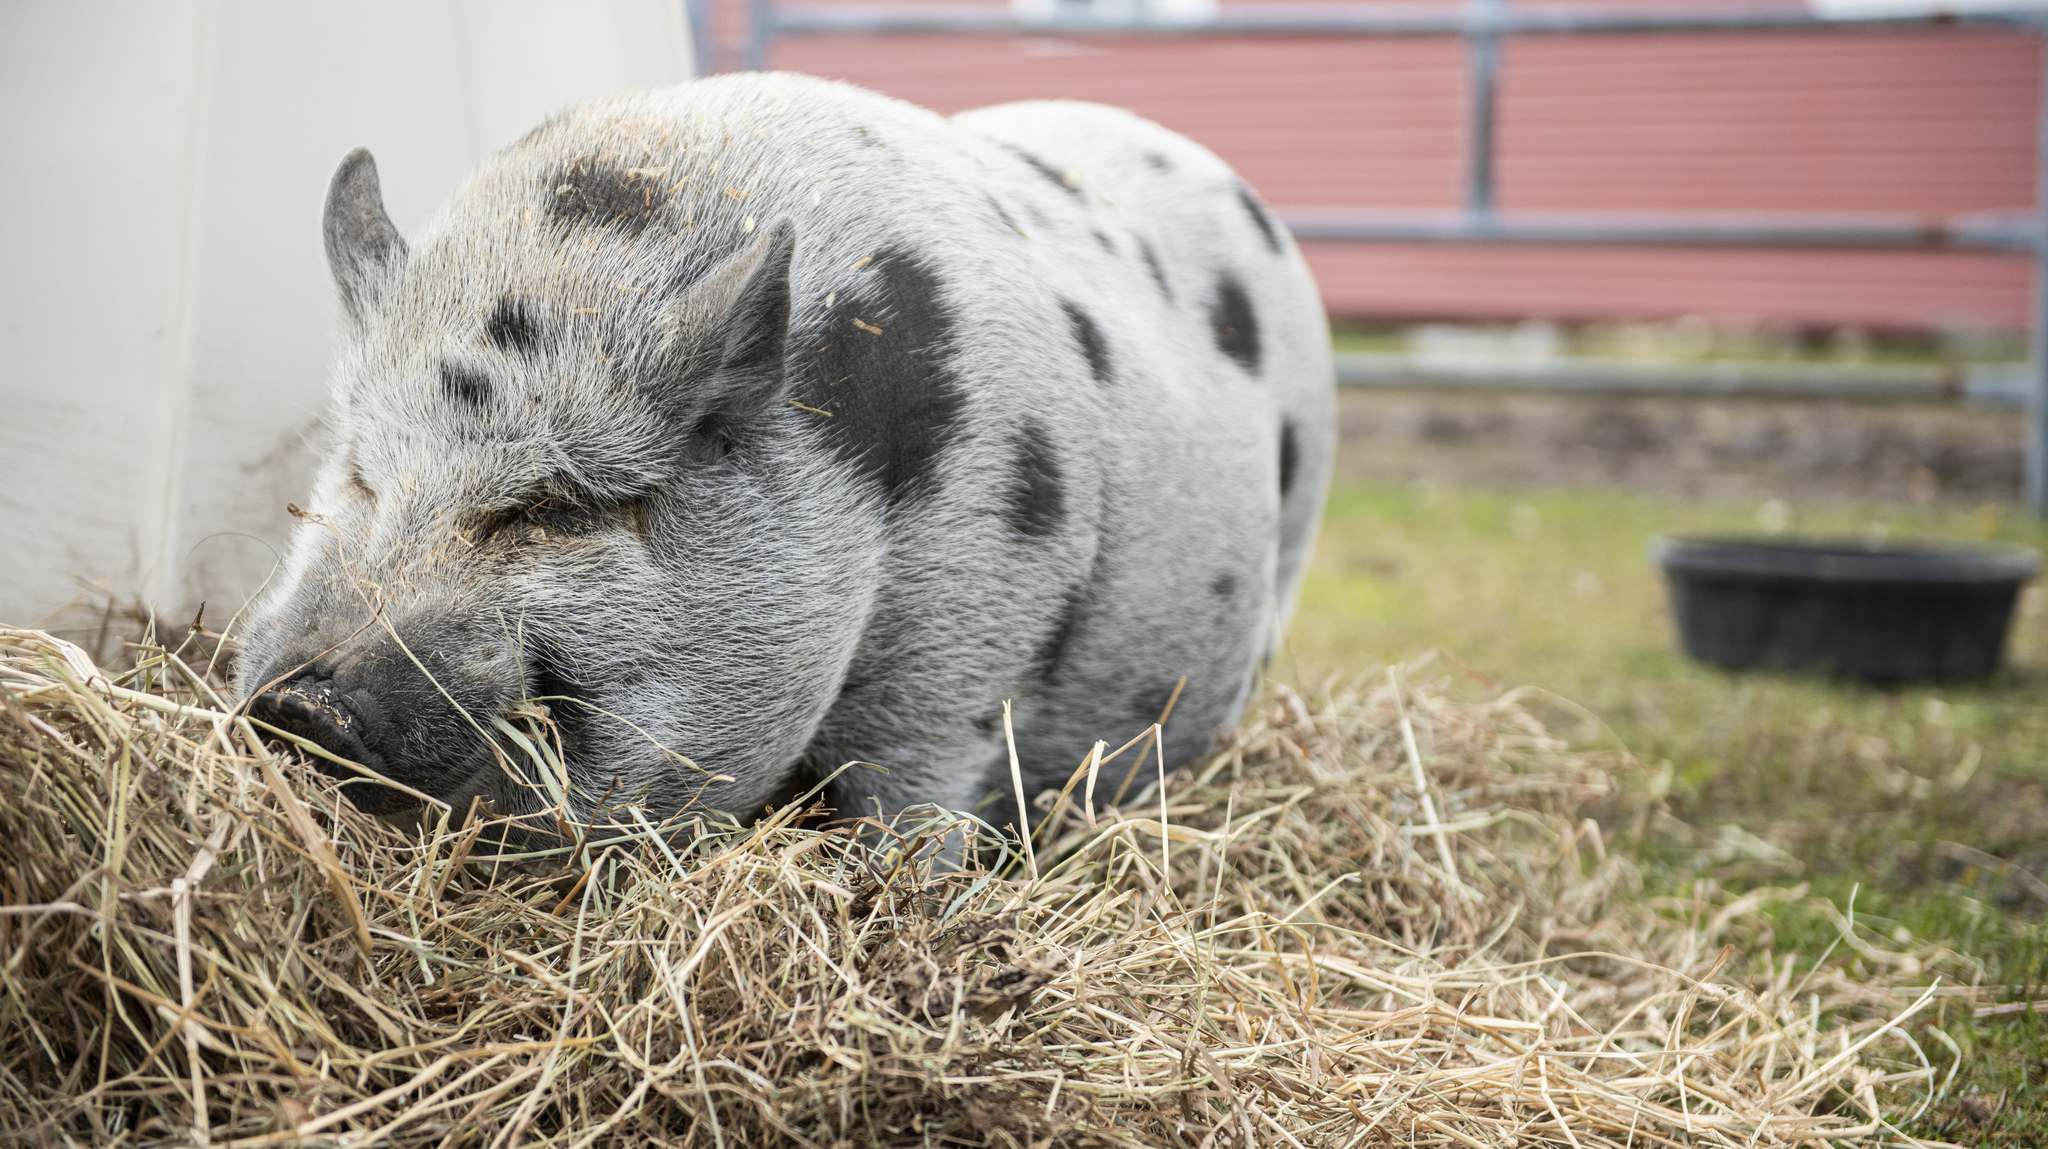 SUPPLIED PHOTO</p><p>Wilbert the pig lives a calm existence, and in the book Cindy and Christabelle's Big Scare, his namesake character provides relaxing advice to frightened goats.</p>